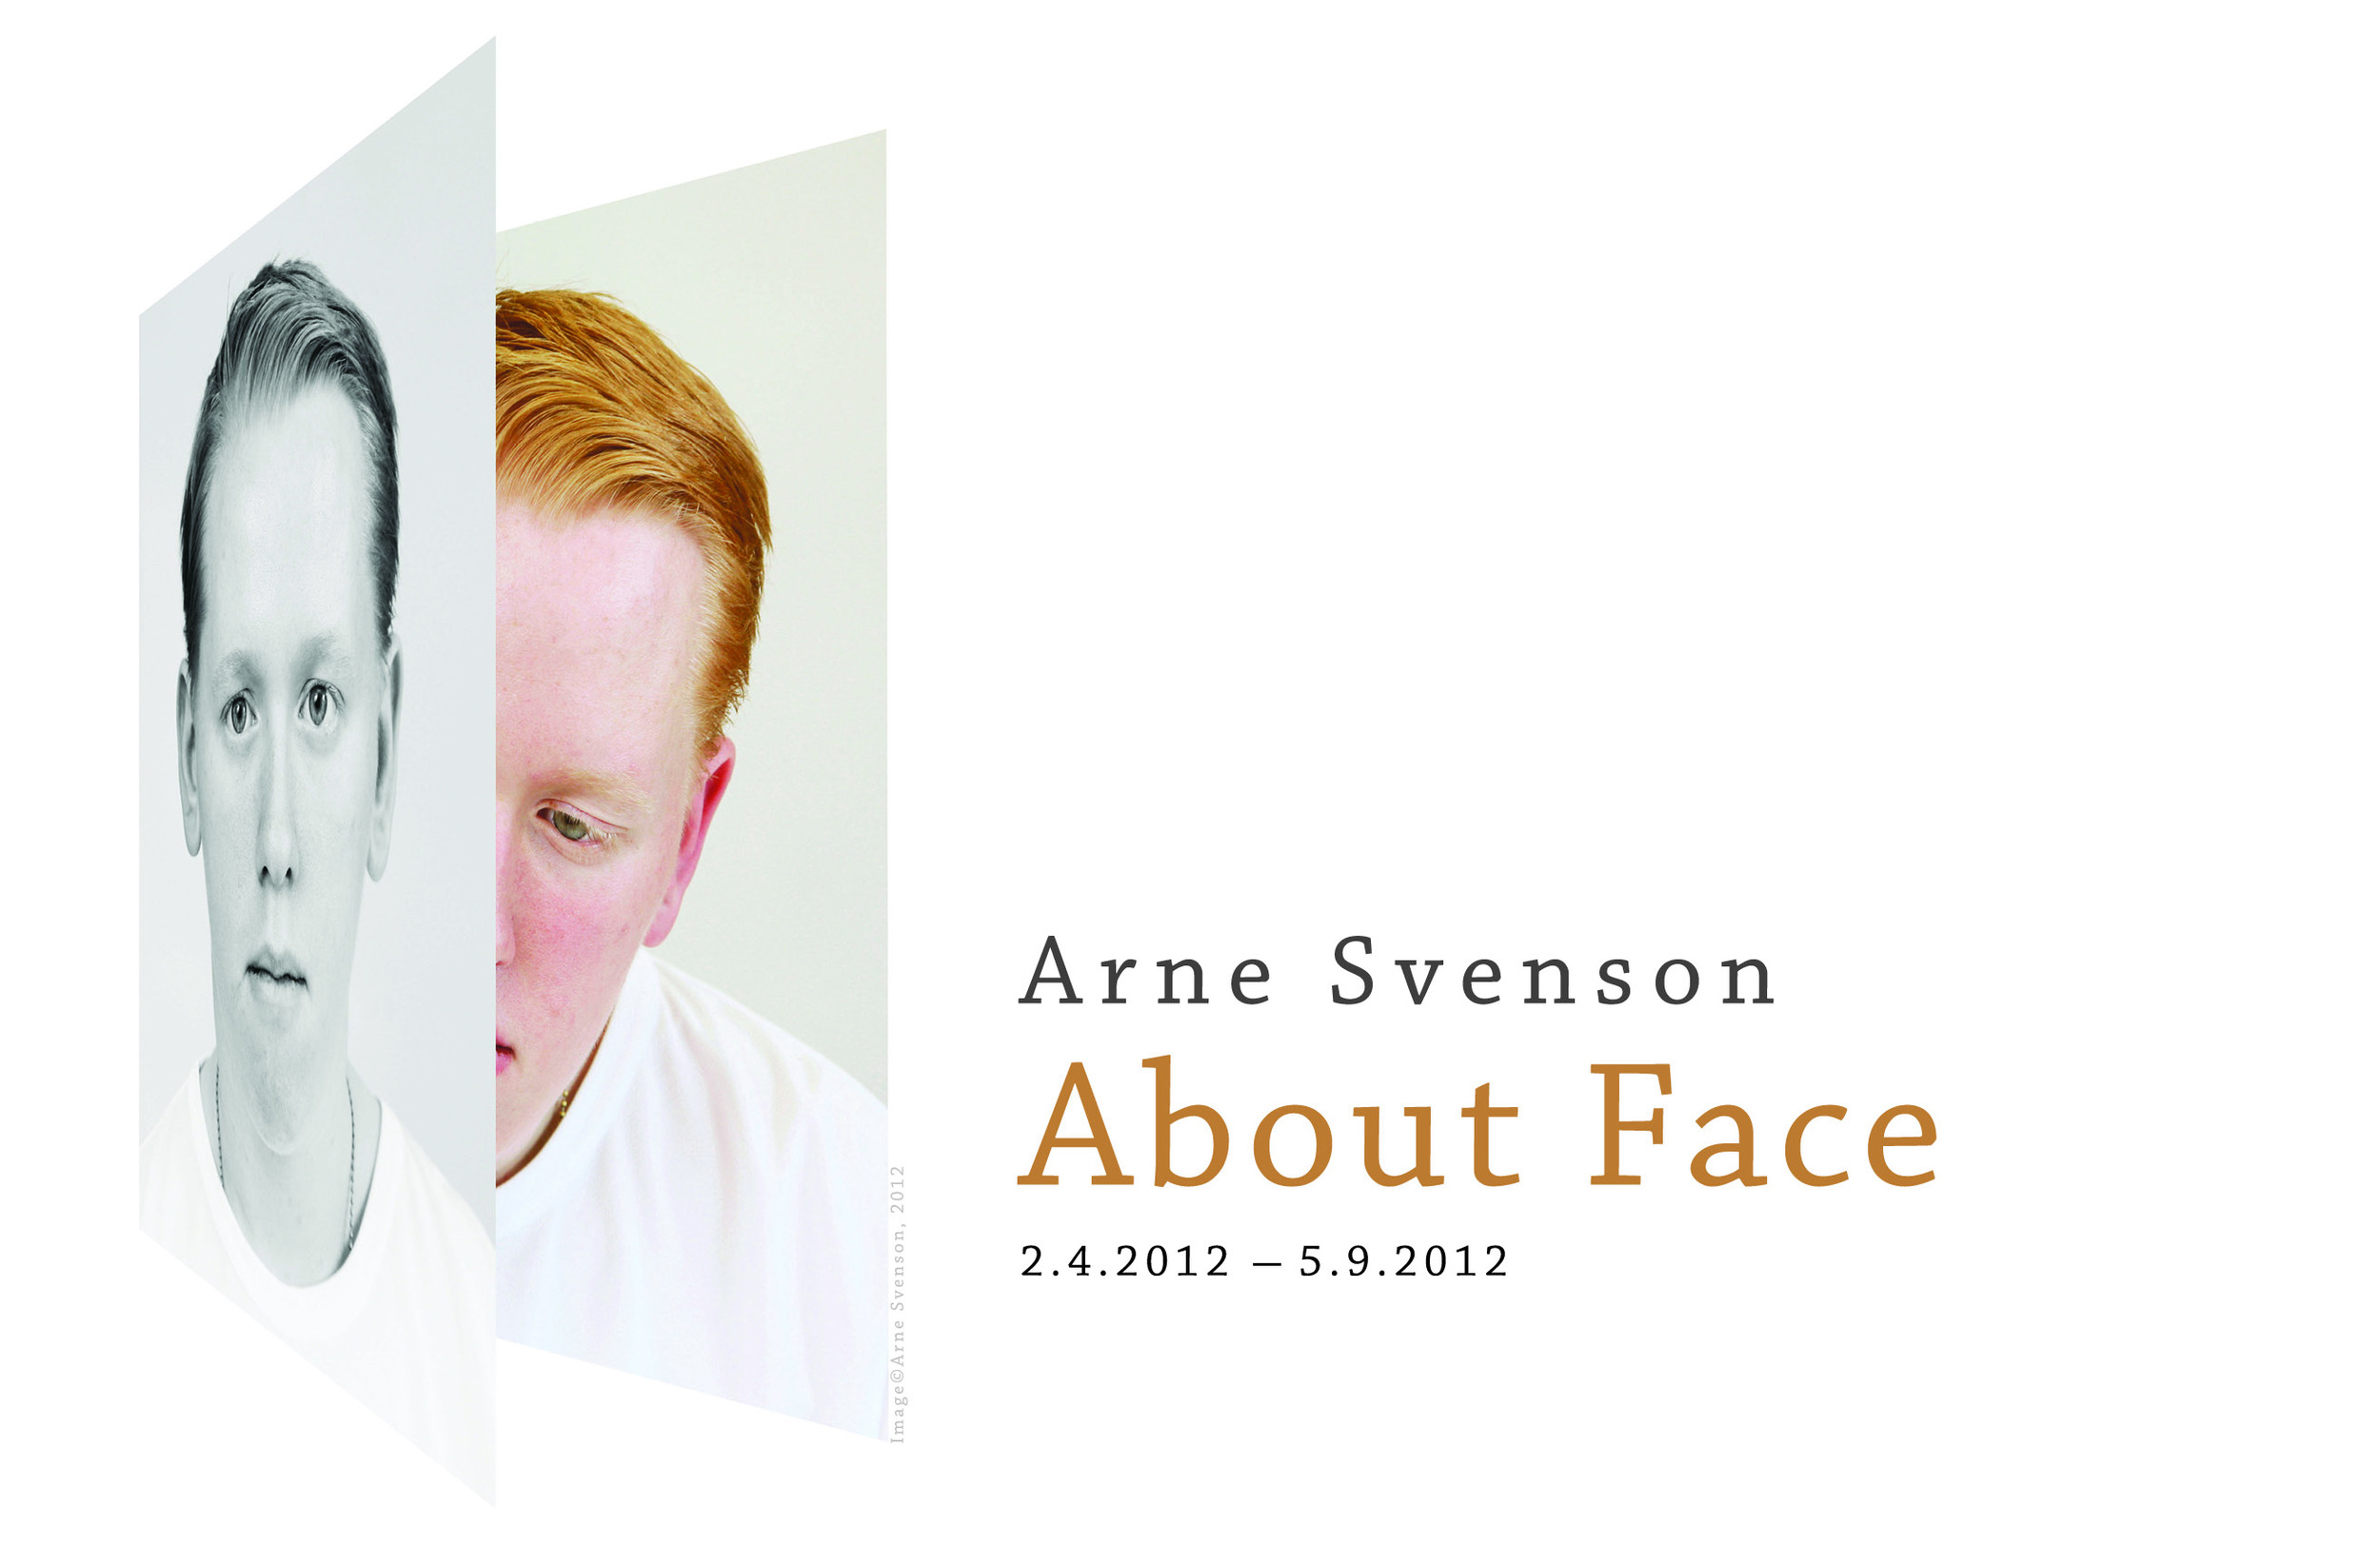 About Face exhibition frontFINAL OUTLINES.jpg